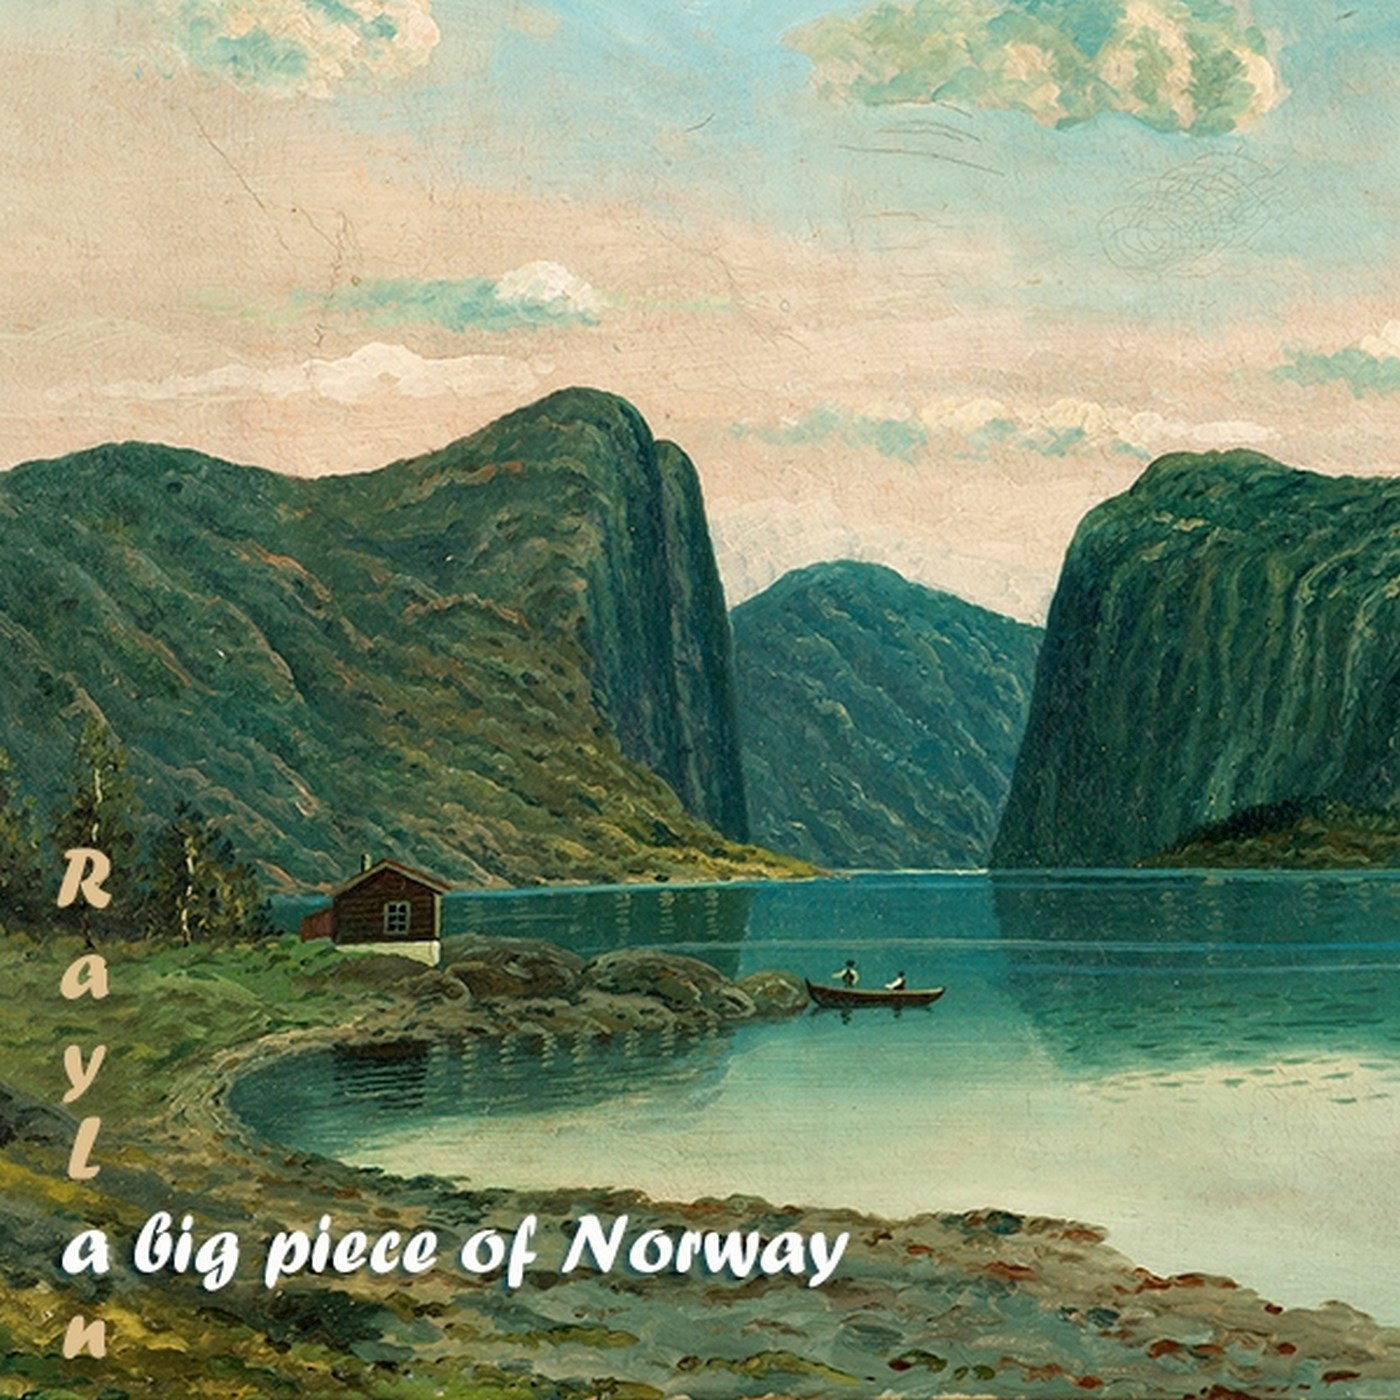 A big piece of Norway